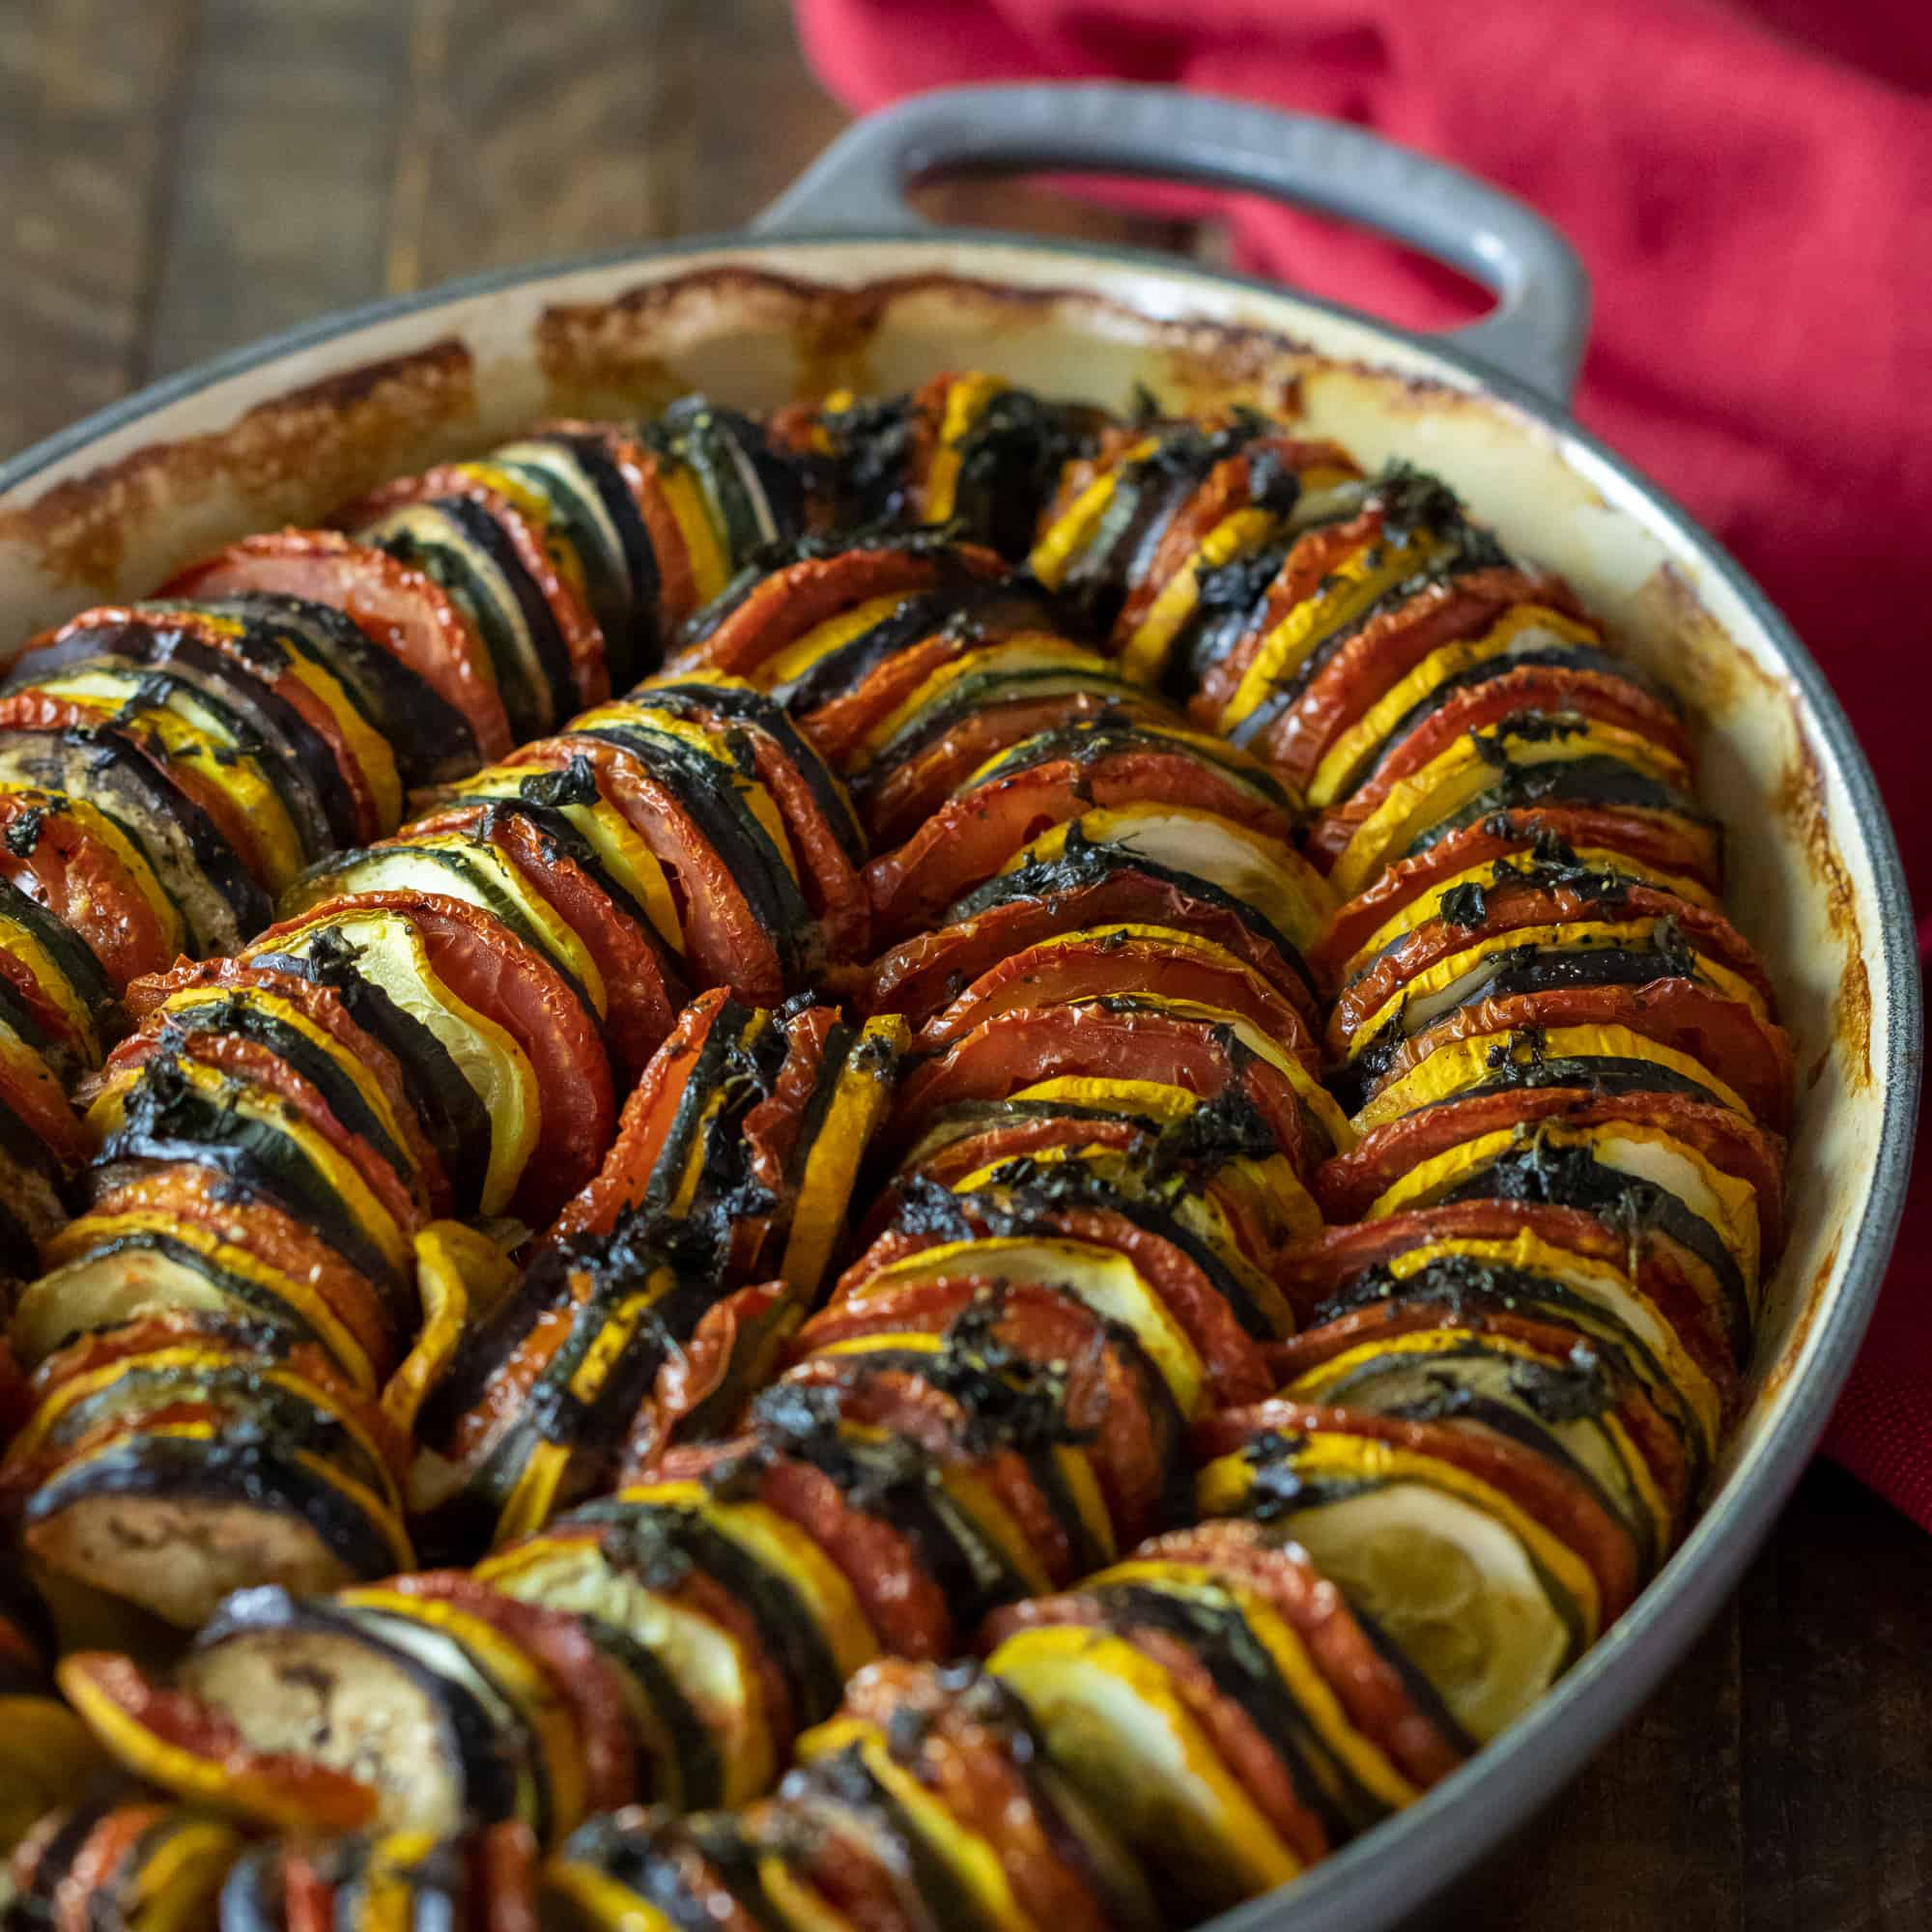 Baked Ratatouille How To Bake In The Oven The Black Peppercorn